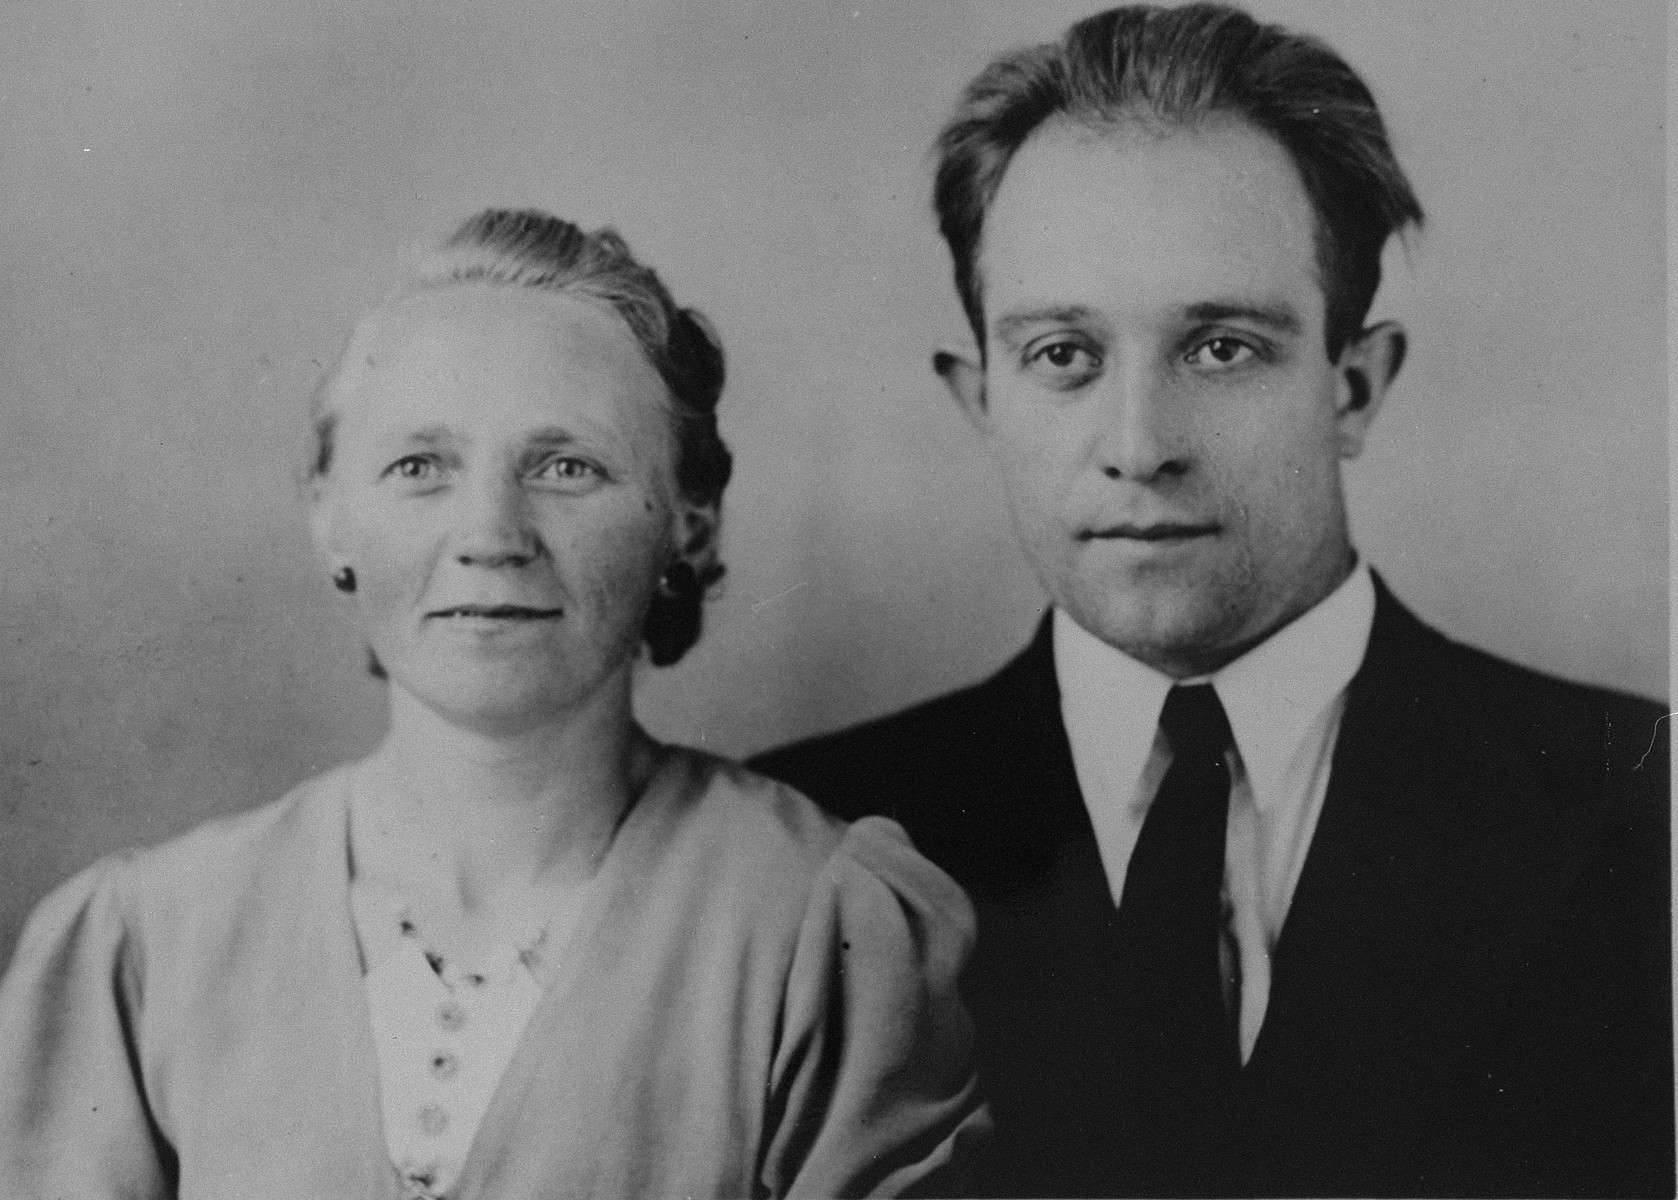 Portrait of Dutch rescuers Johannes and Janke DeVries who were recognized by Yad Vashem as Righteous Among the Nations in 1977.